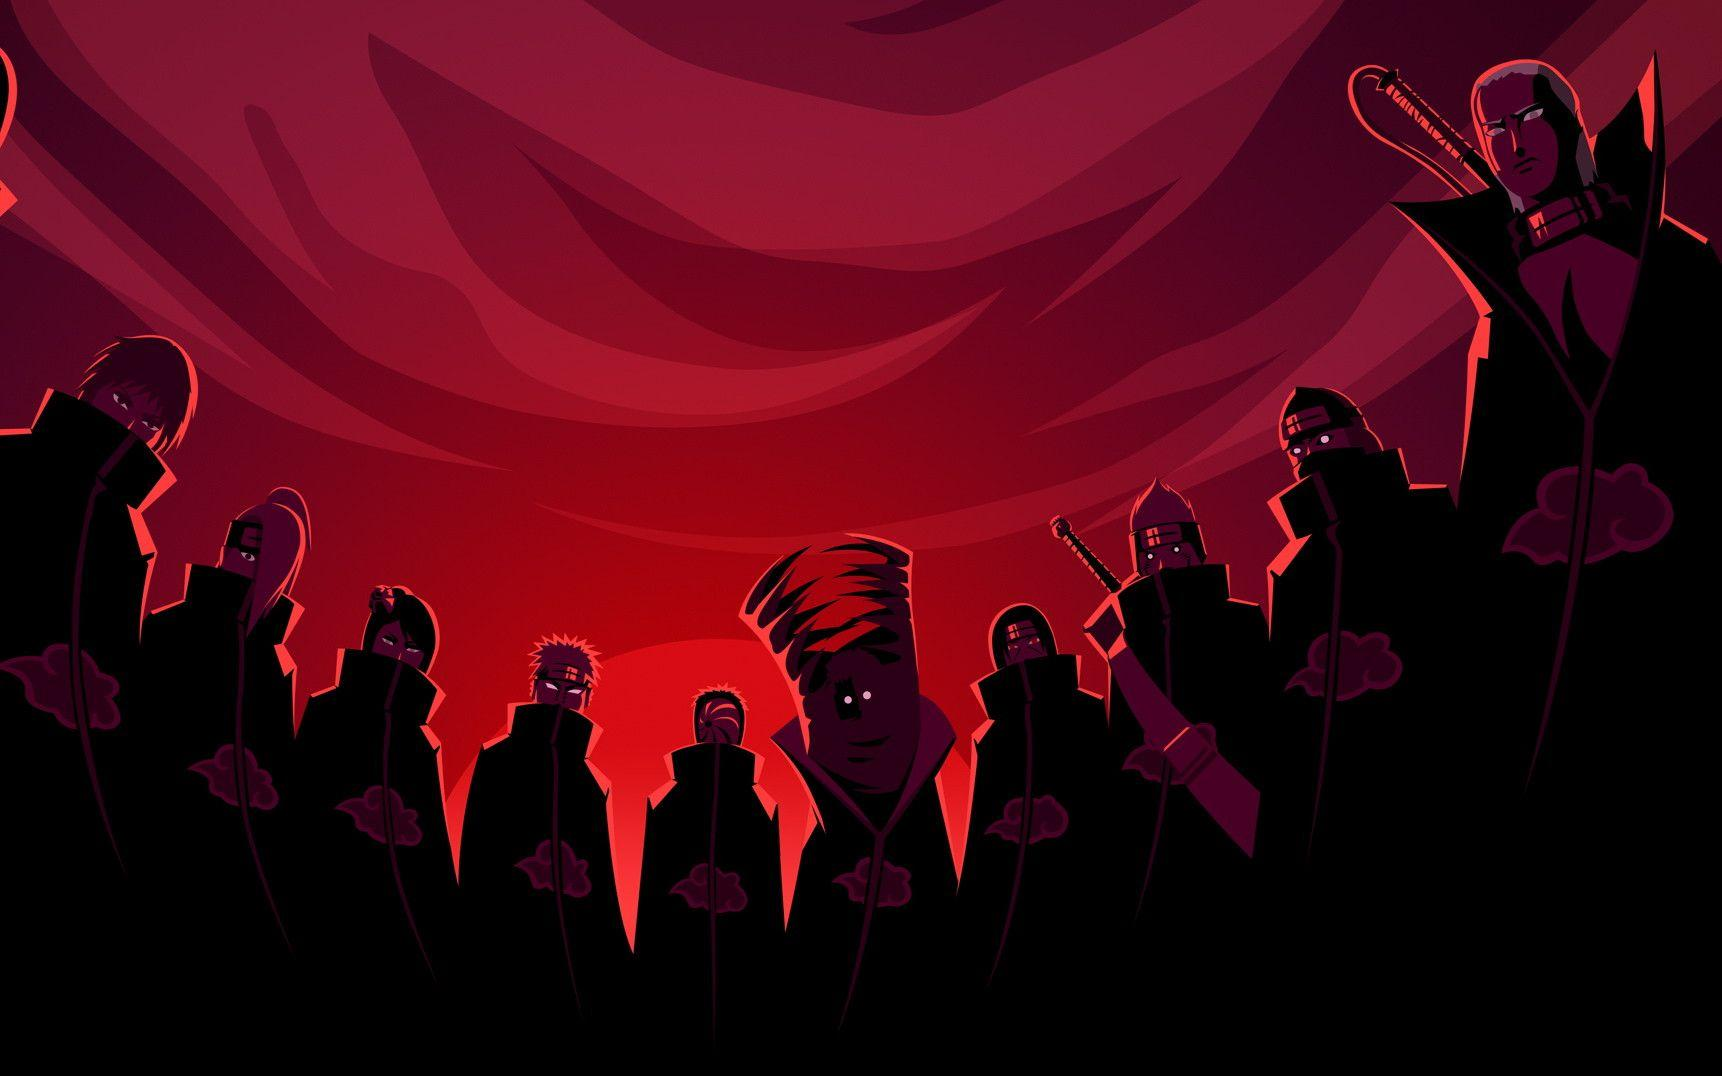 Wallpapers For > Akatsuki Wallpaper Hd